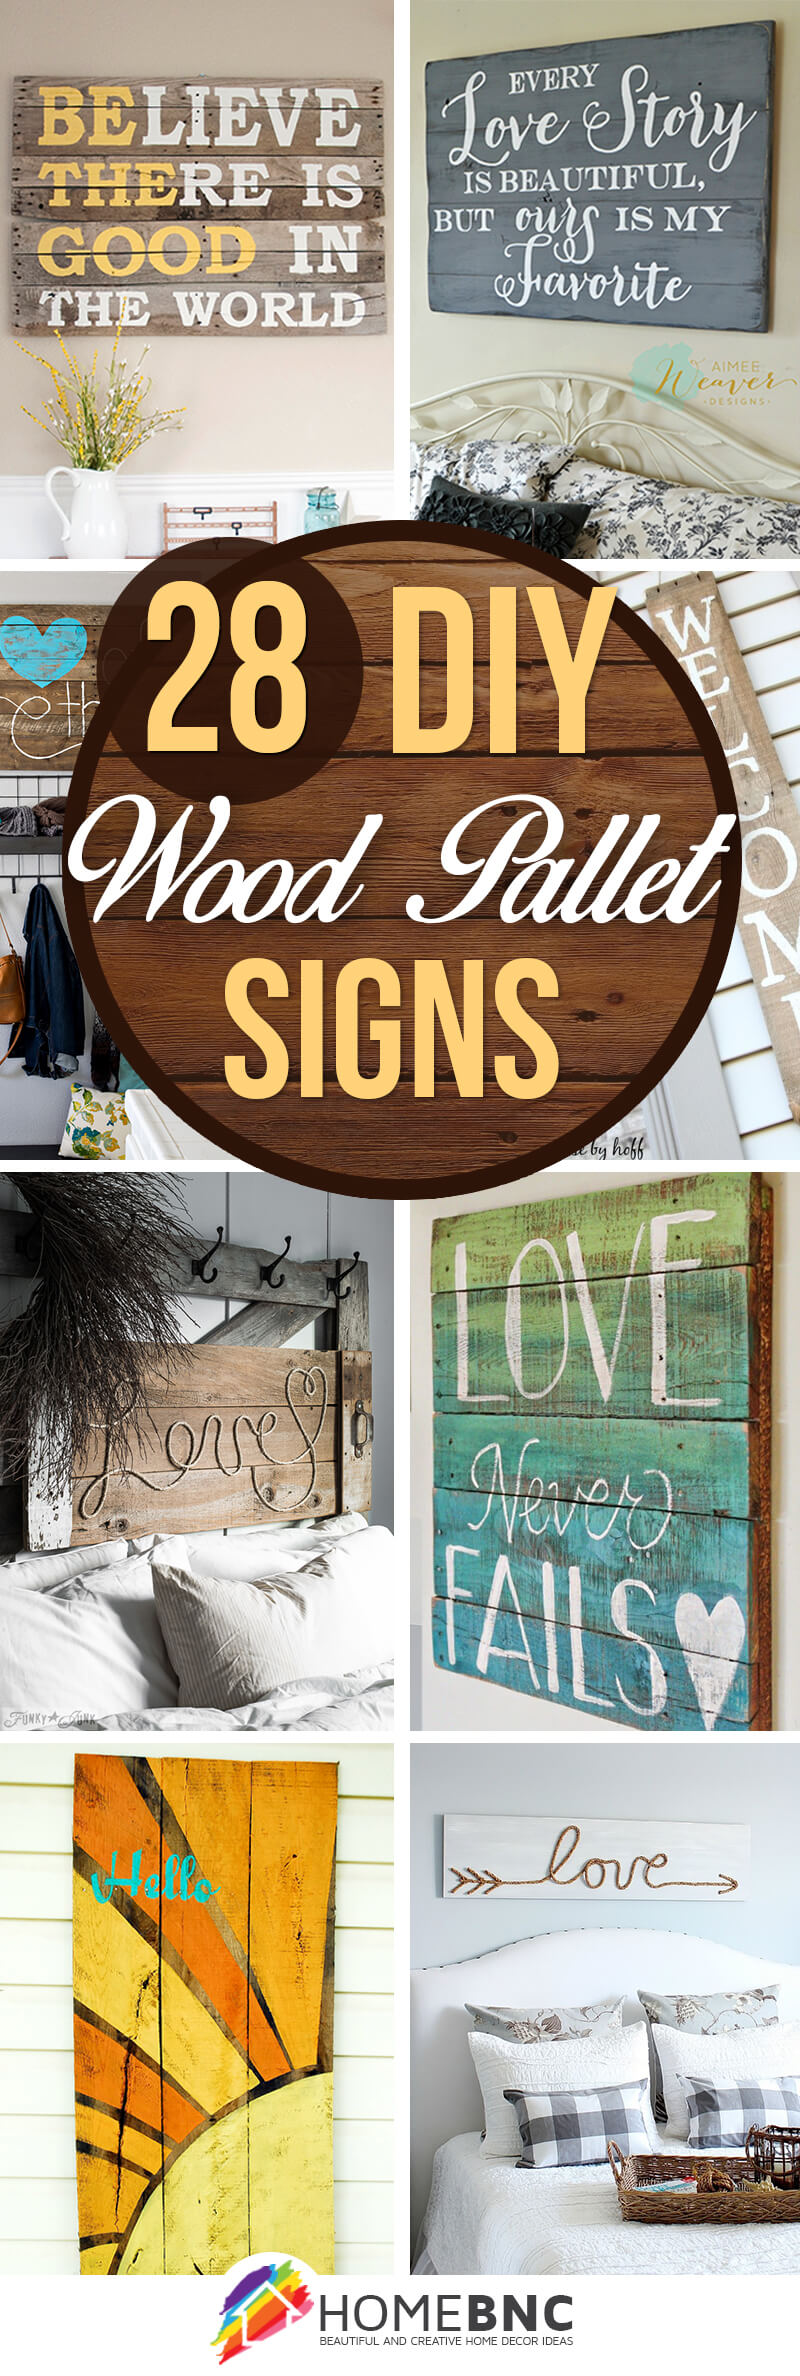 diy pallet wood sign ideas - Wood Sign Design Ideas